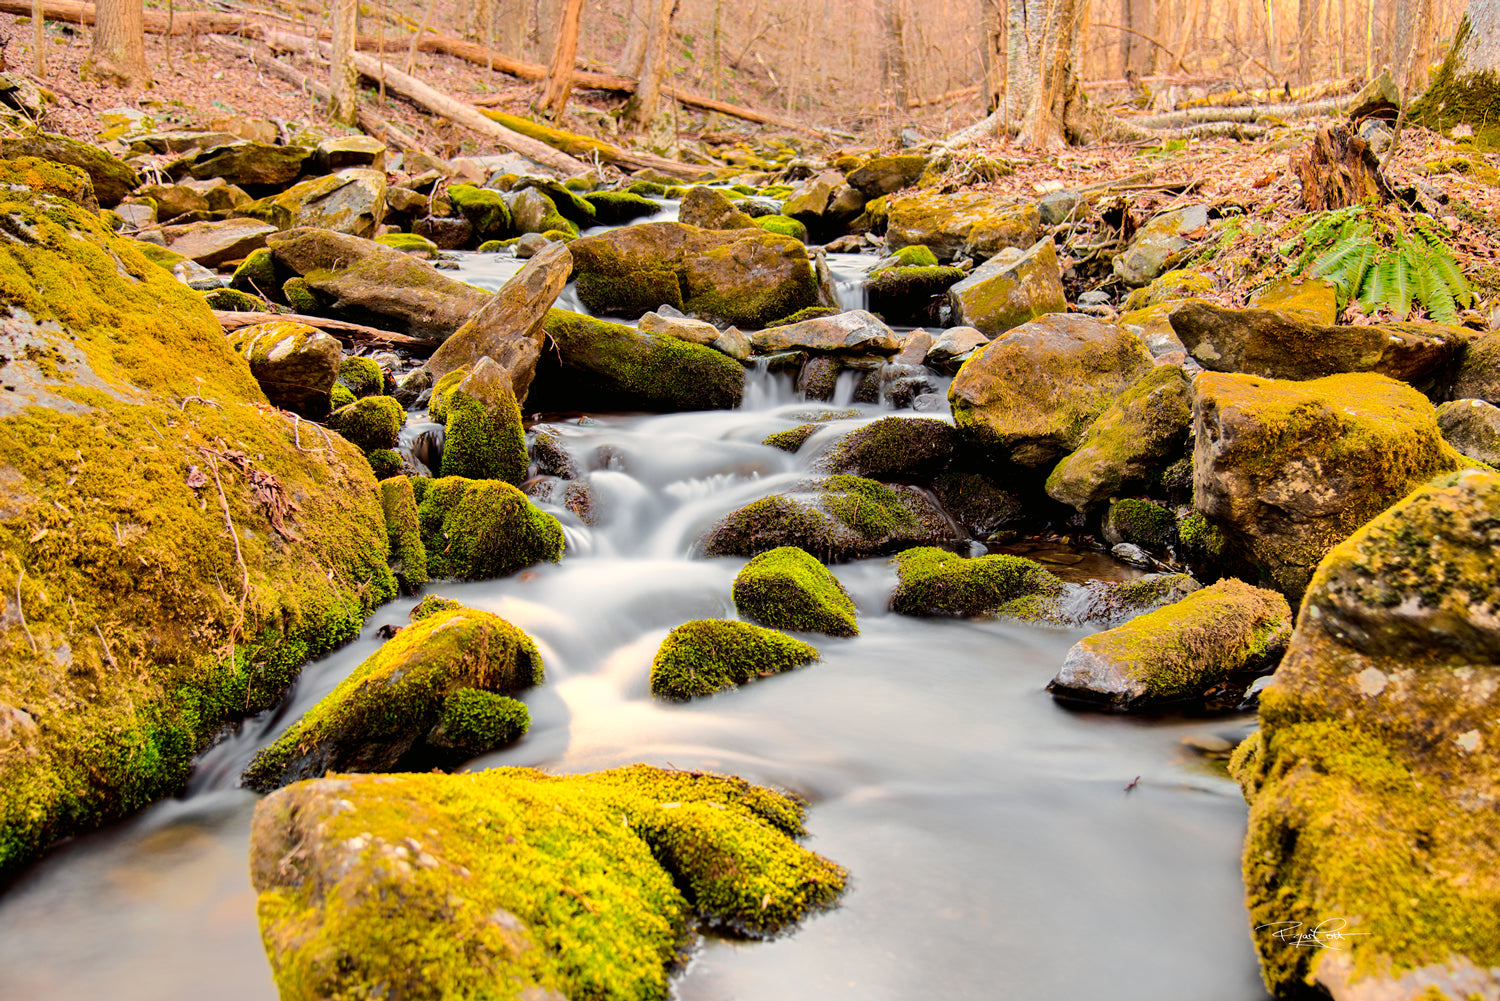 Winter Brook (Shenandoah National Park, VA)